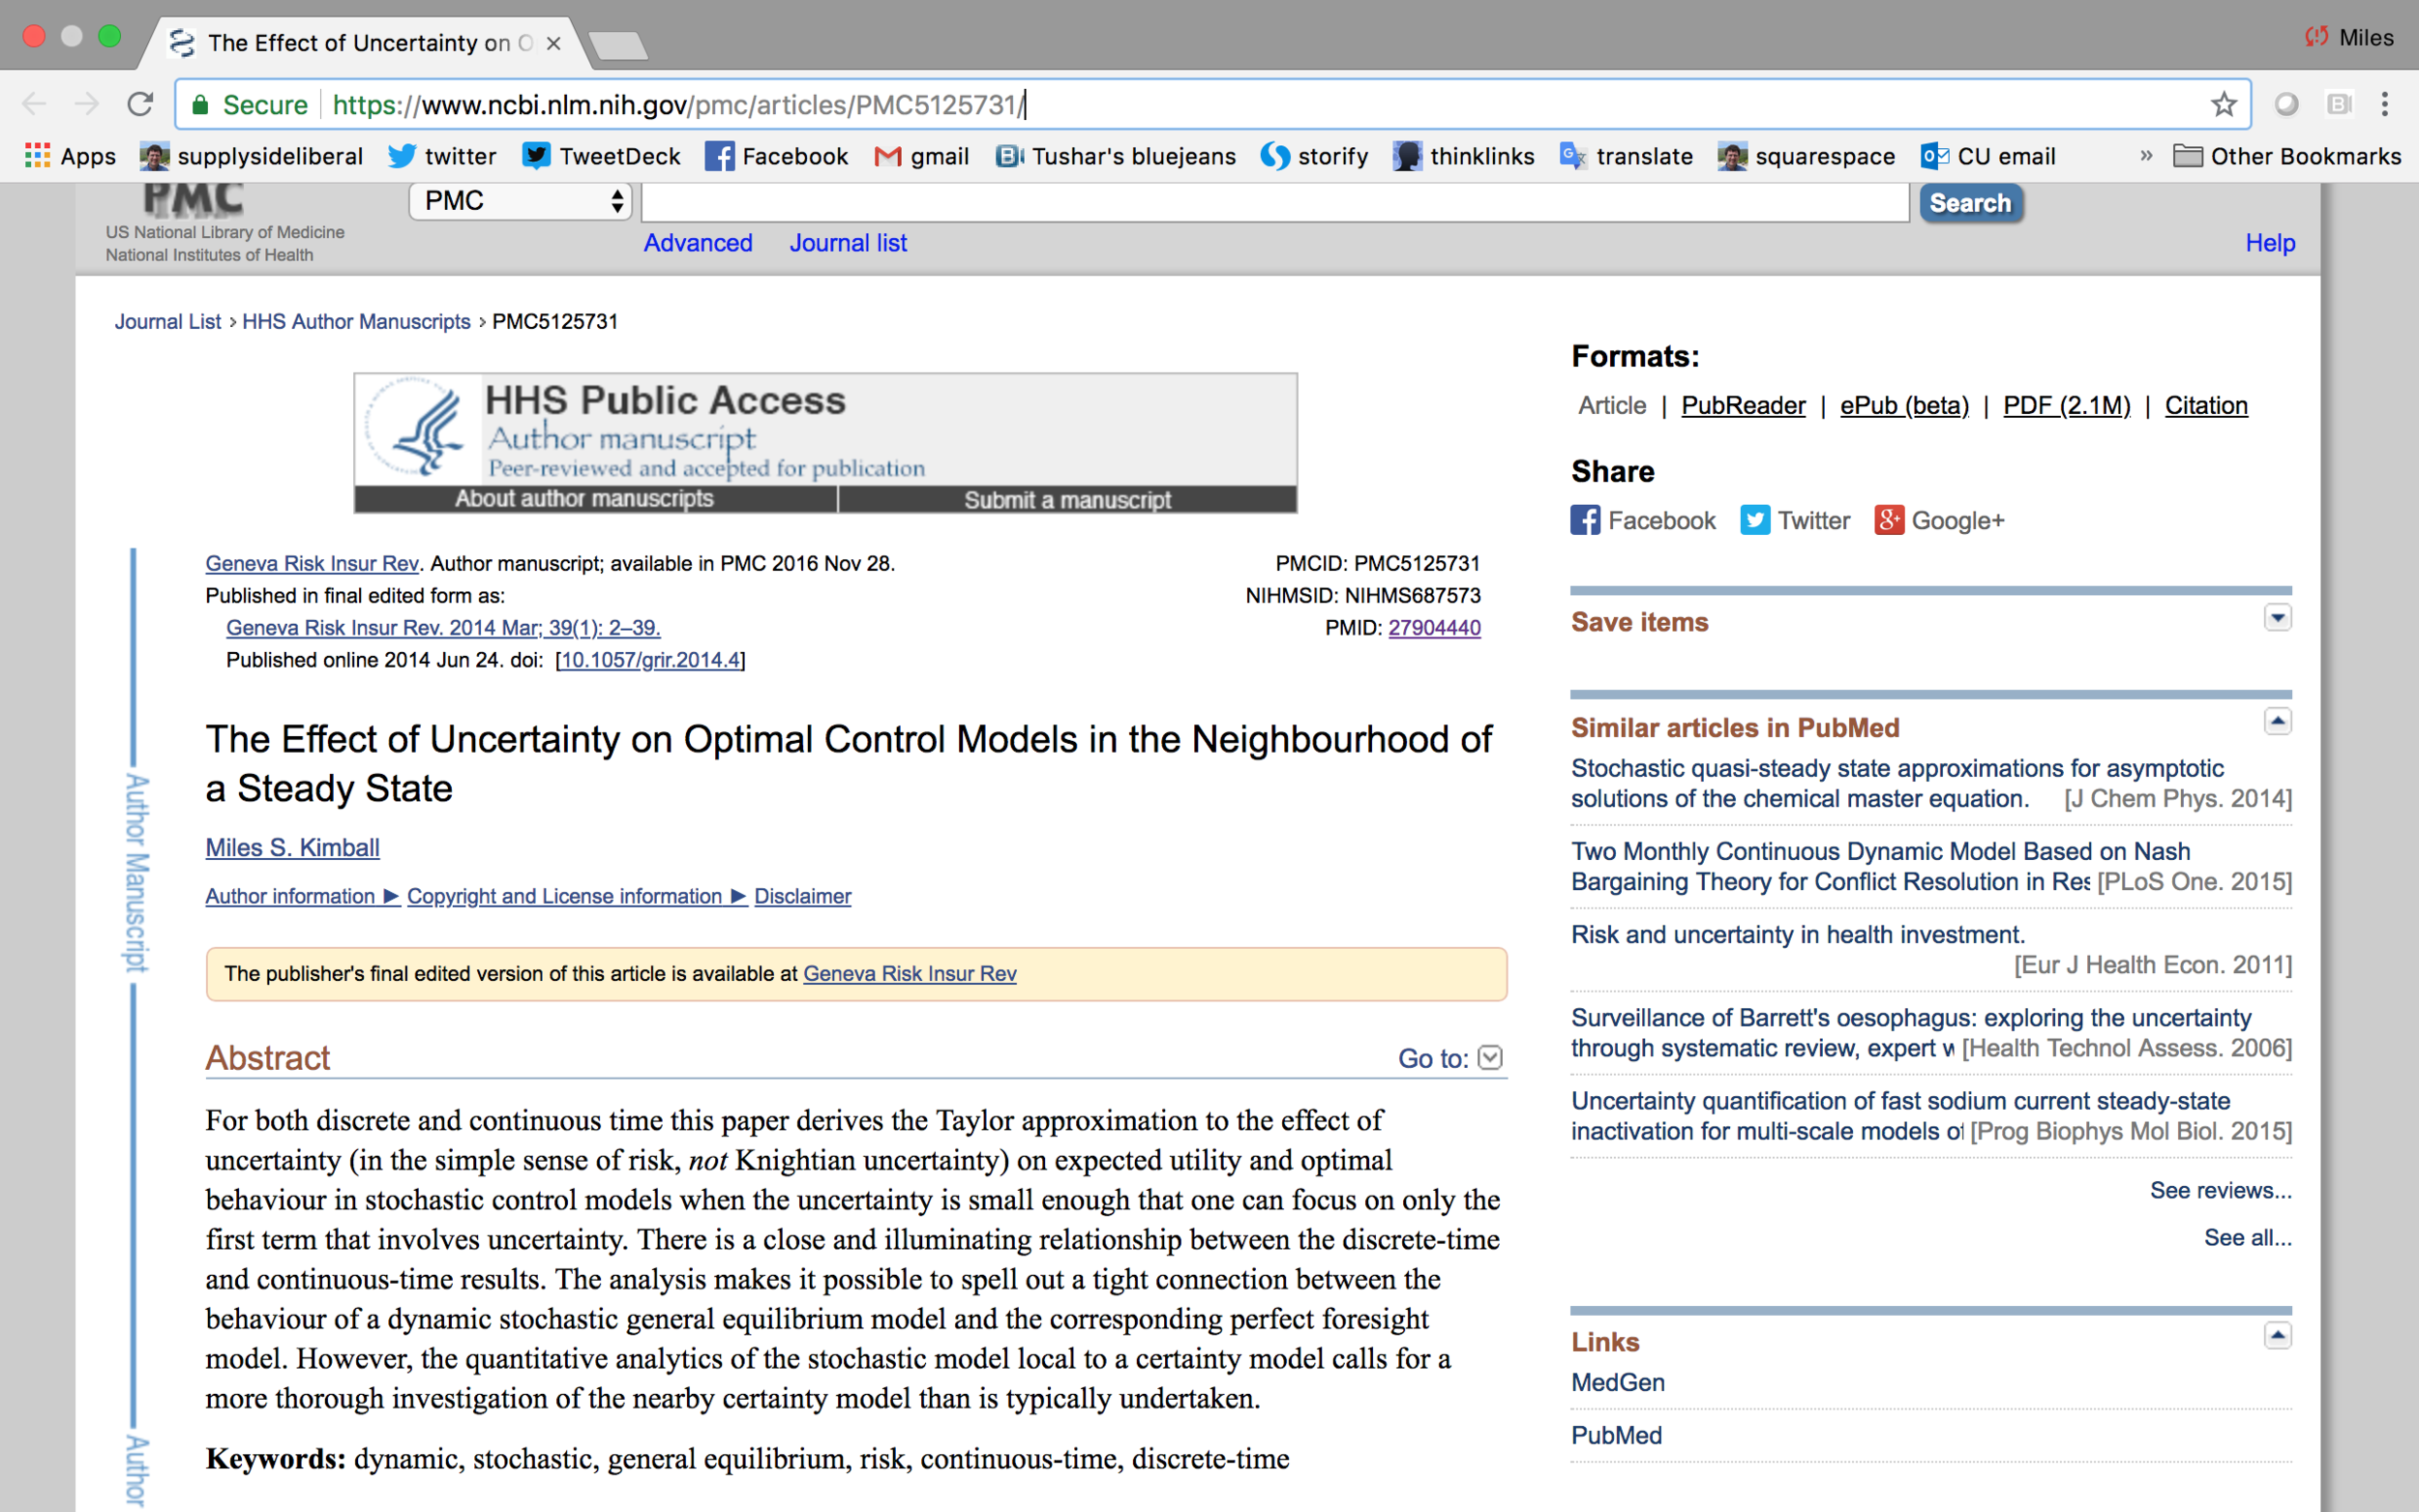 Link to an ungated version of the journal article shown above